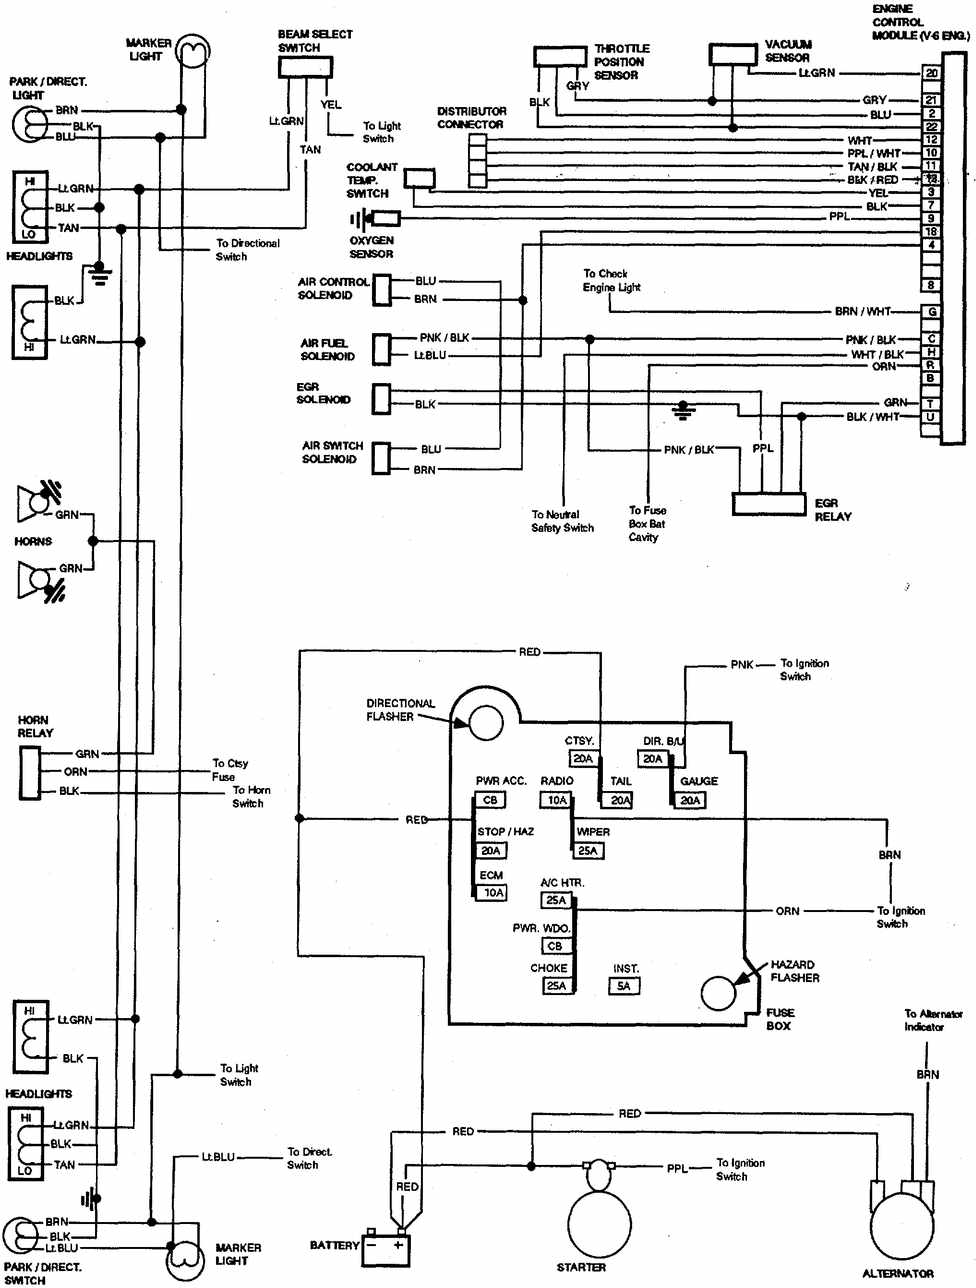 75 Chevy Caprice Wiring Diagram Library 4wd 1978 Turn Signal Detailed Schematics Rh Antonartgallery Com 1975